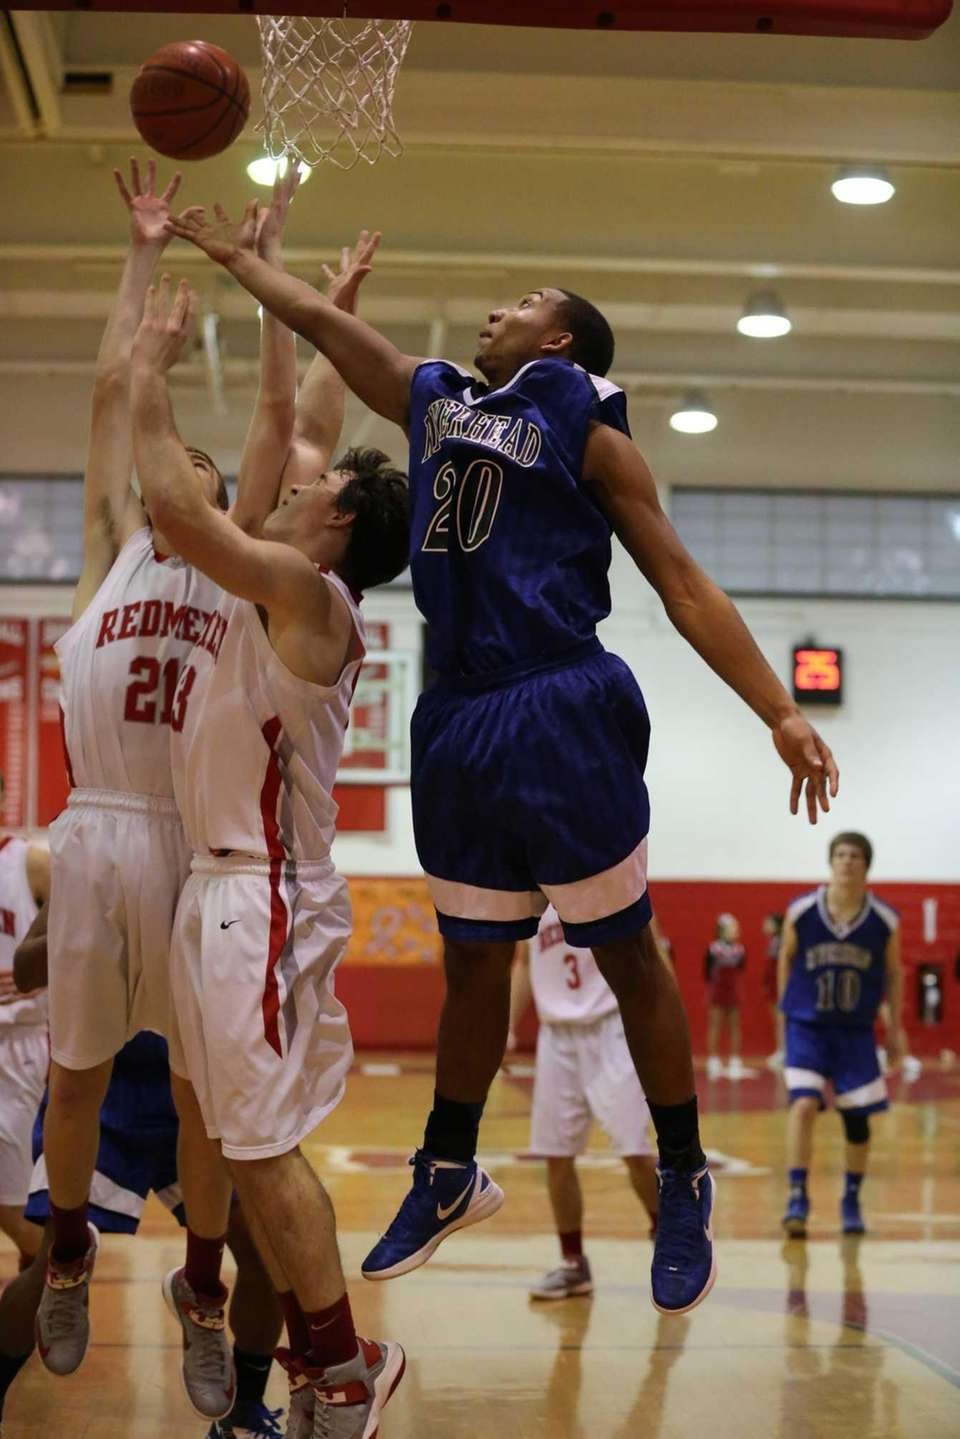 Riverhead's Jeremiah Cheatom #20 fights for the rebound